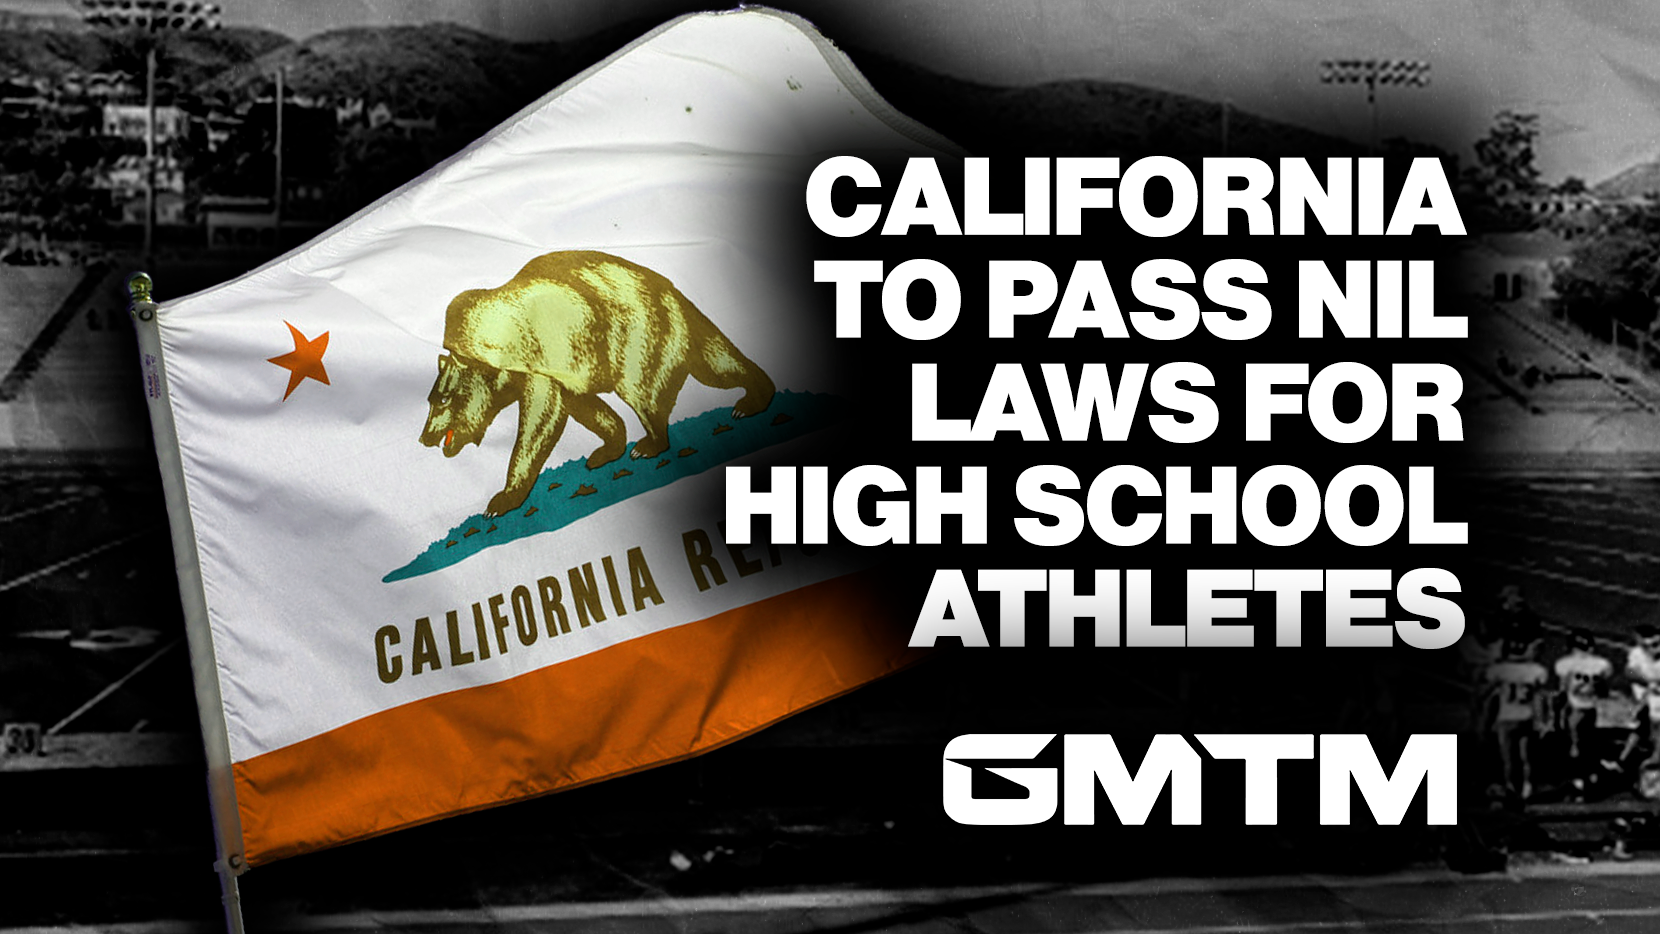 California set to offer high school athletes NIL rights